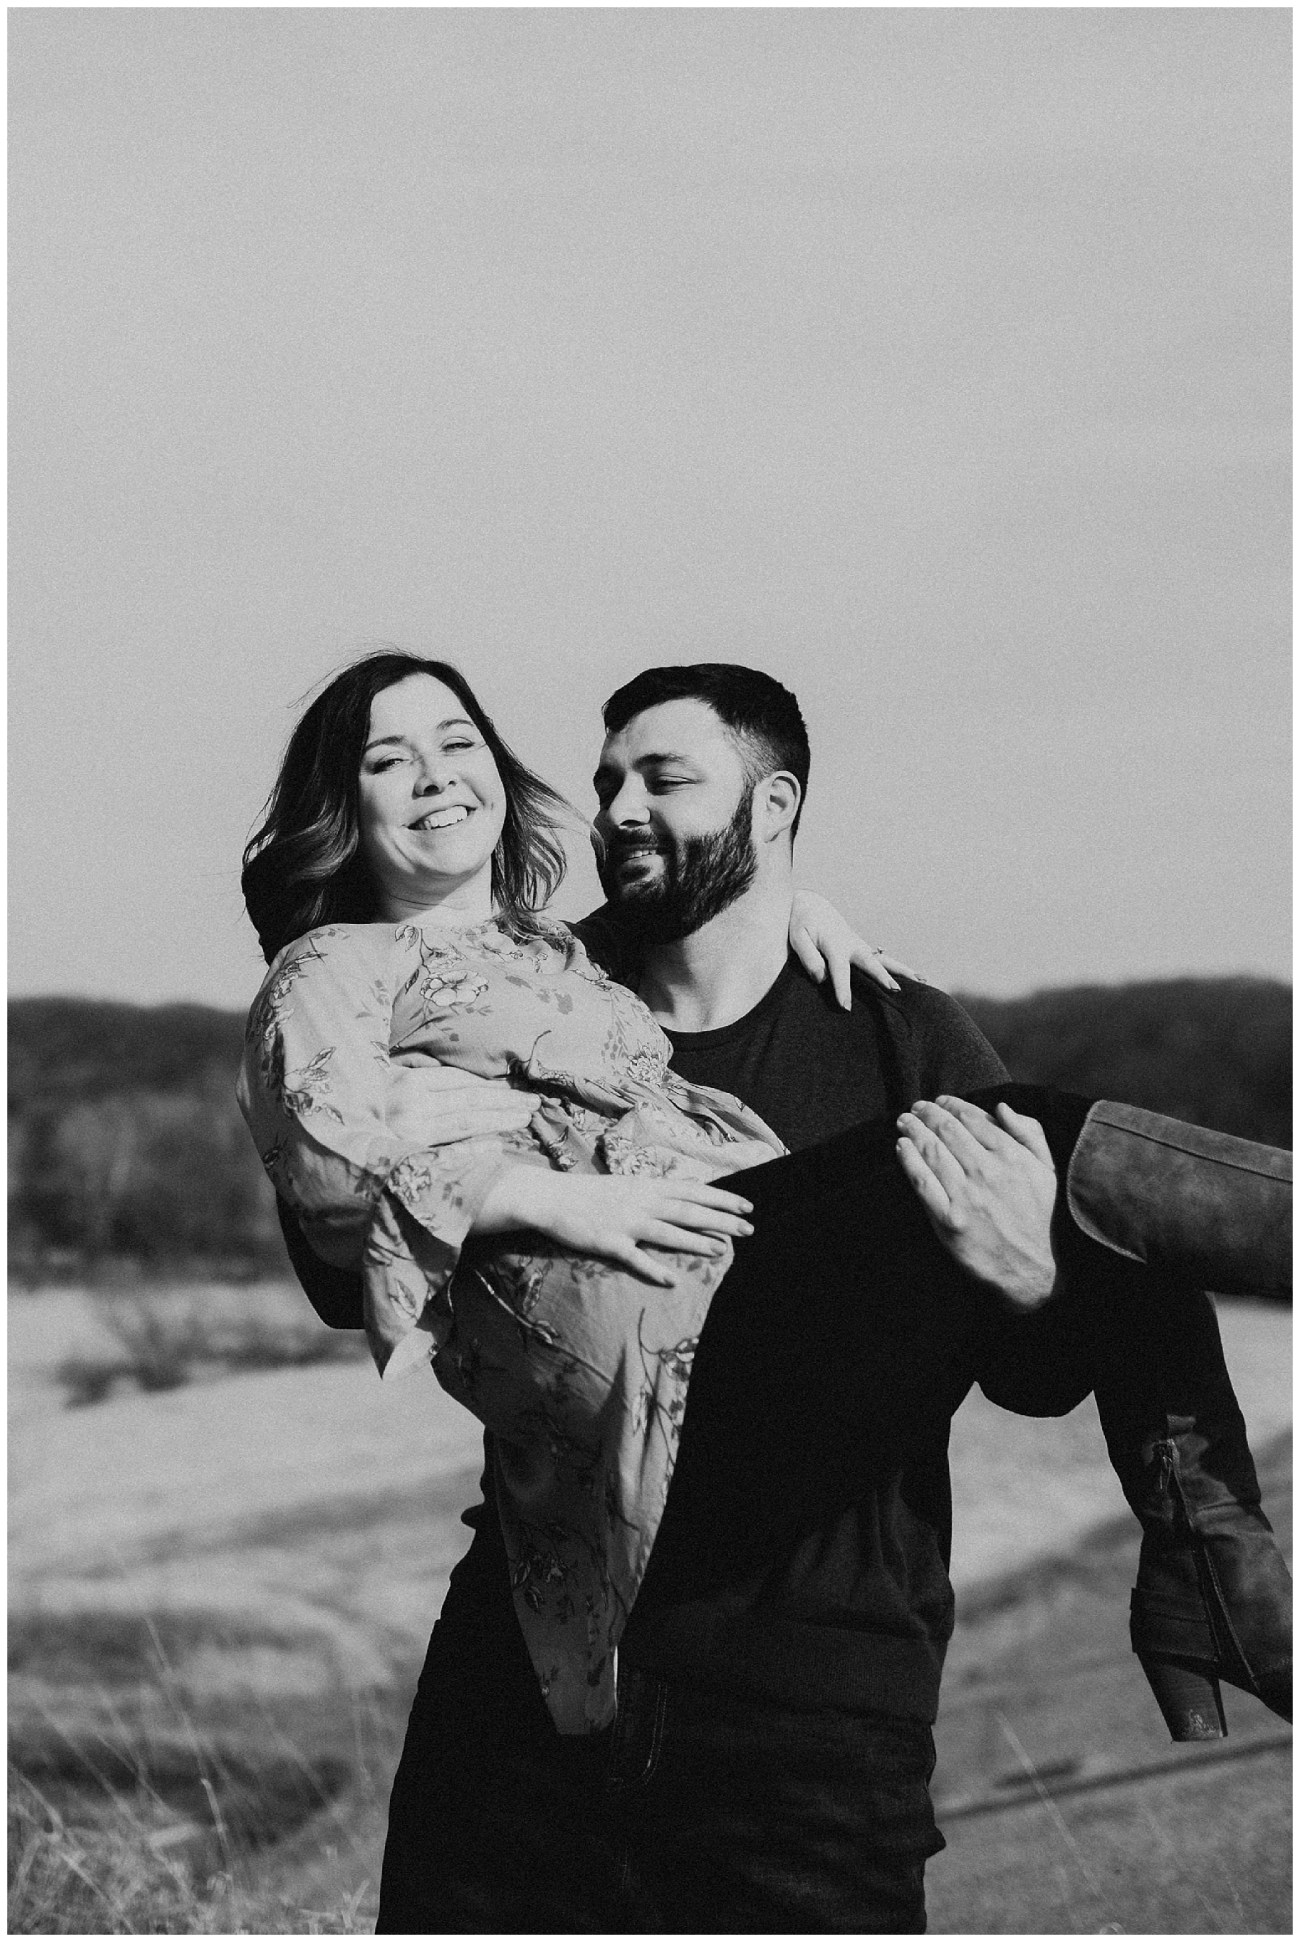 Charlie + Tiffany // Engagements in the woods - Lauren F otography